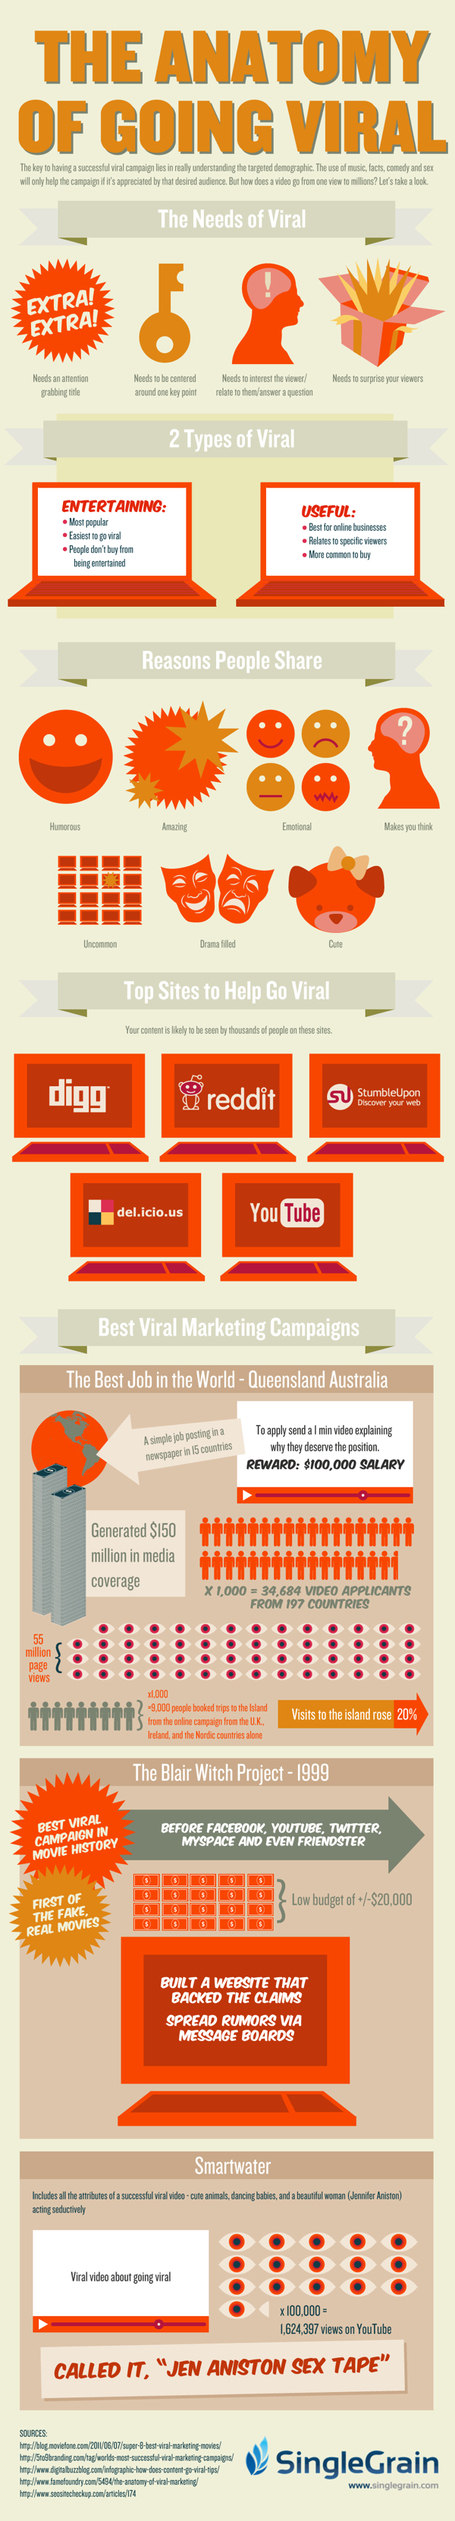 The Anatomy of Going Viral [Infographic] | Managing options | Scoop.it